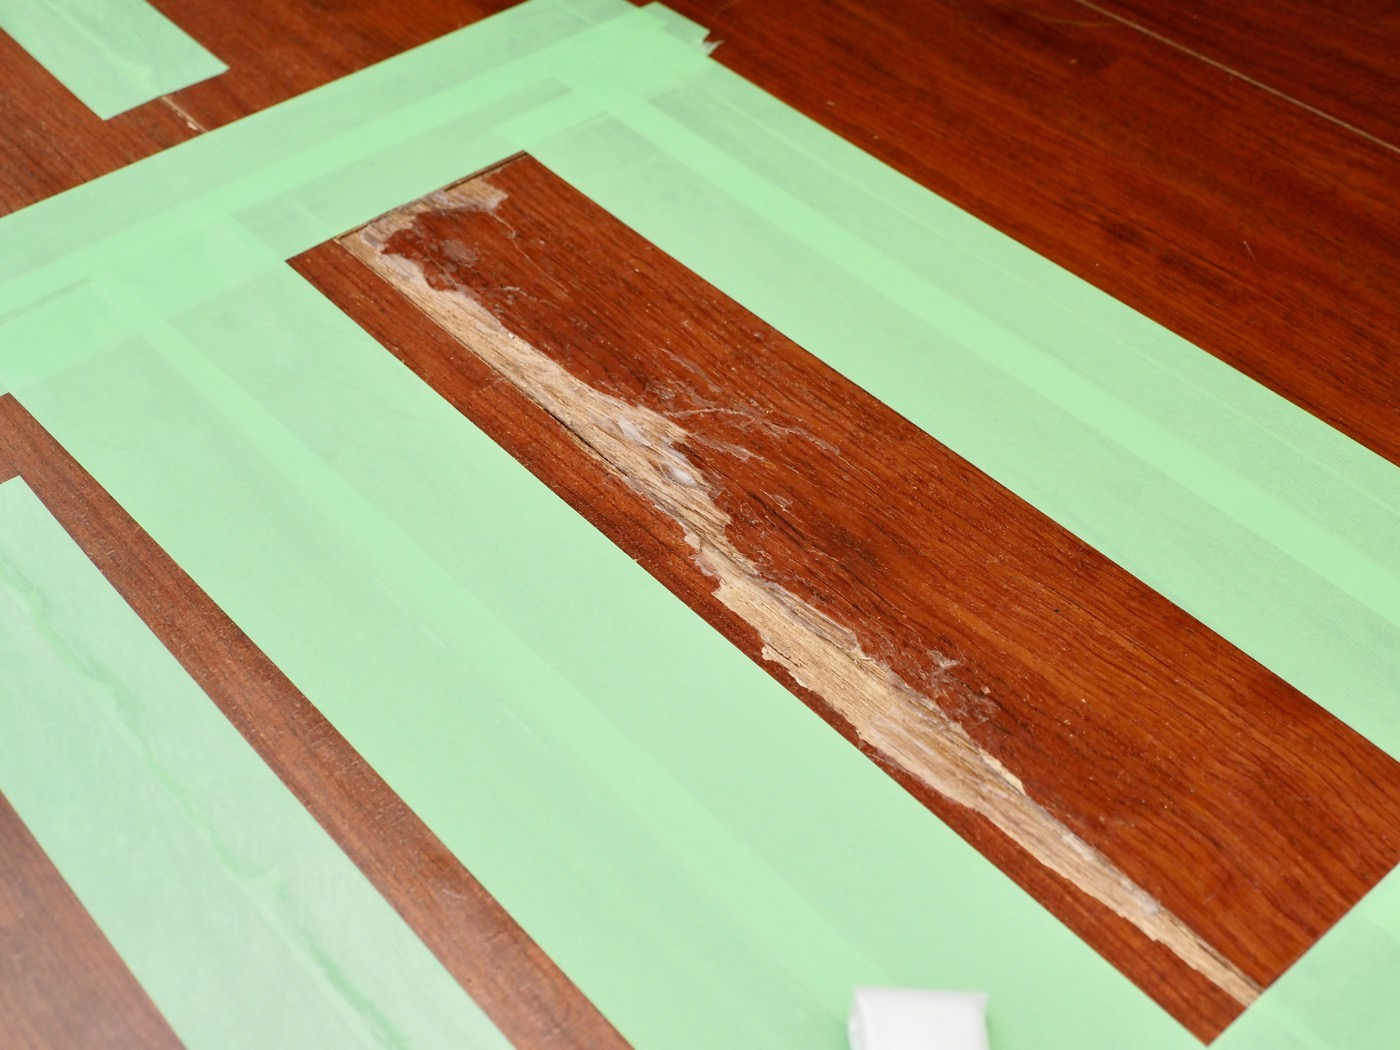 Repaired badly cracked flooring with diy 00002